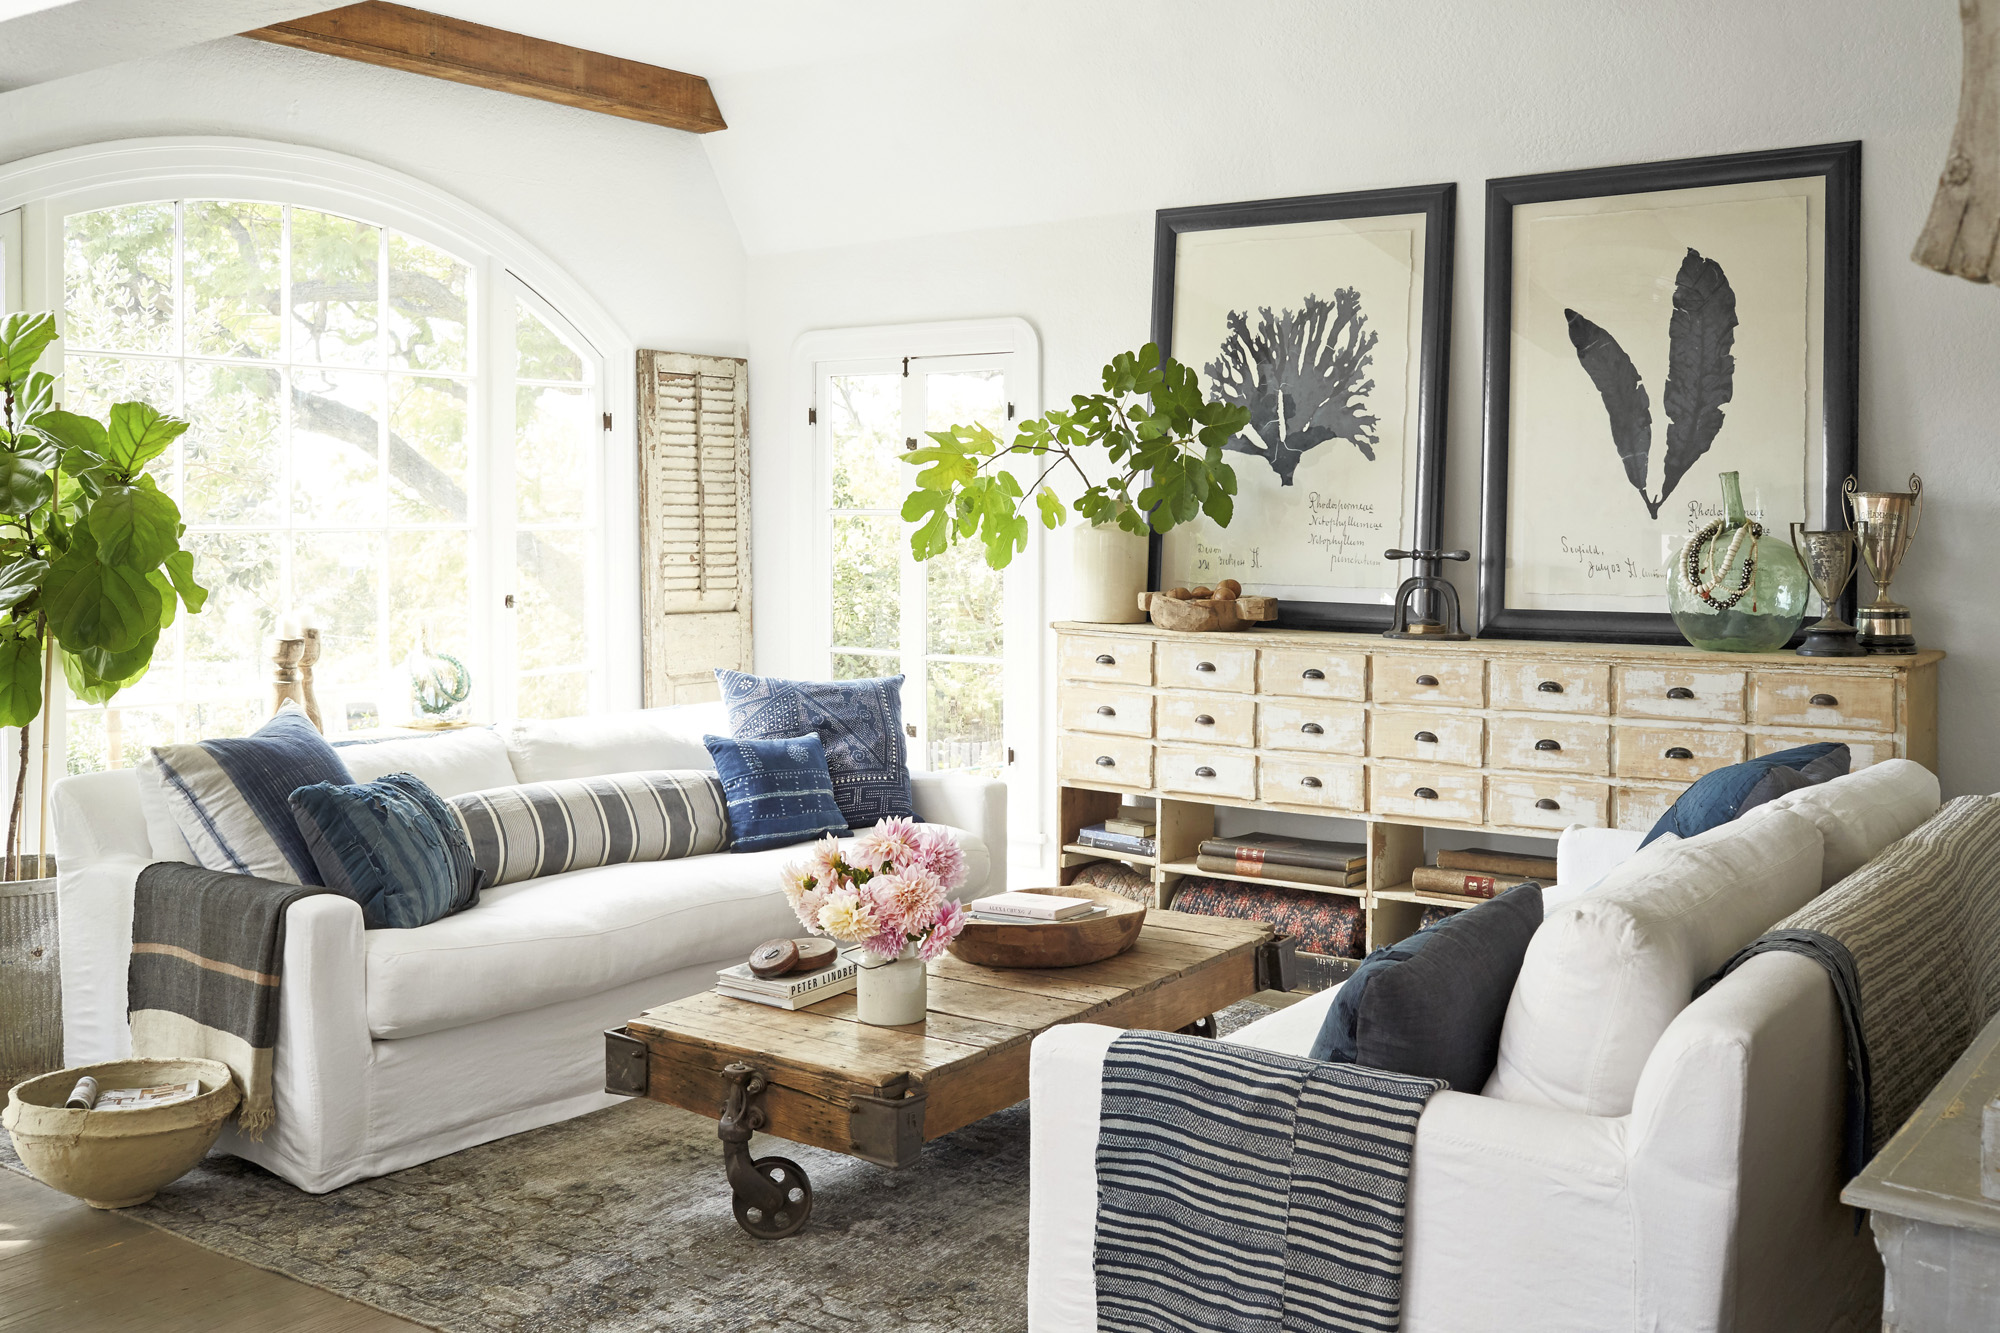 20 Grey Living Room Ideas For Gorgeous And Elegant Spaces: Jeni Maus California 1920s Cottage